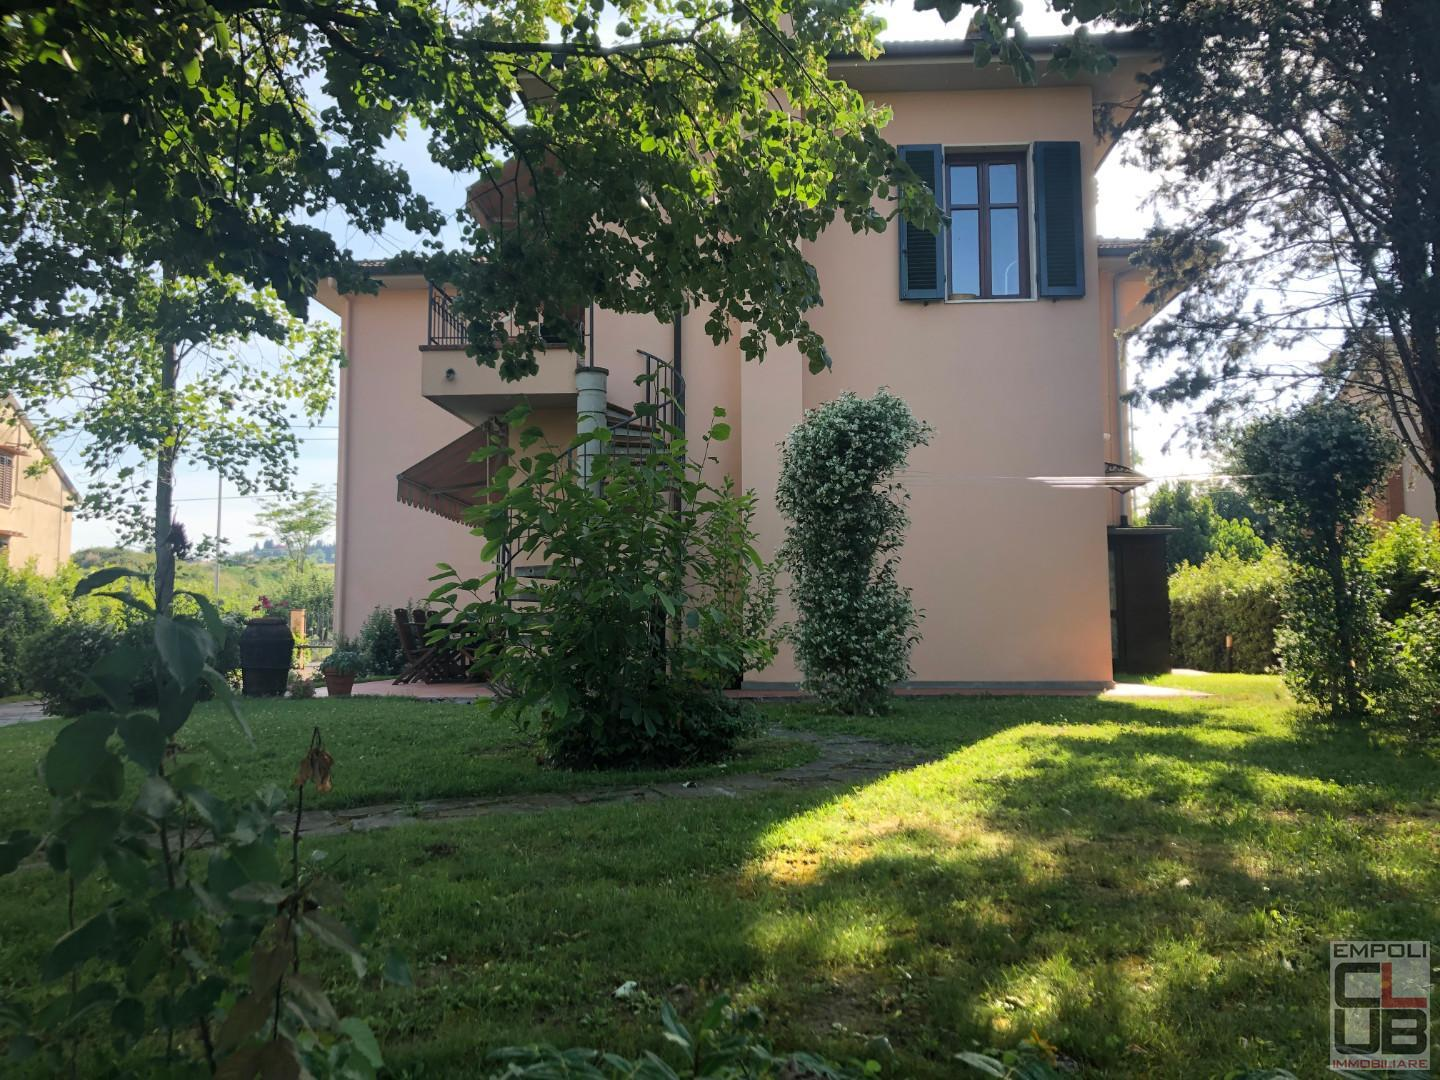 Semi-detached house in Empoli